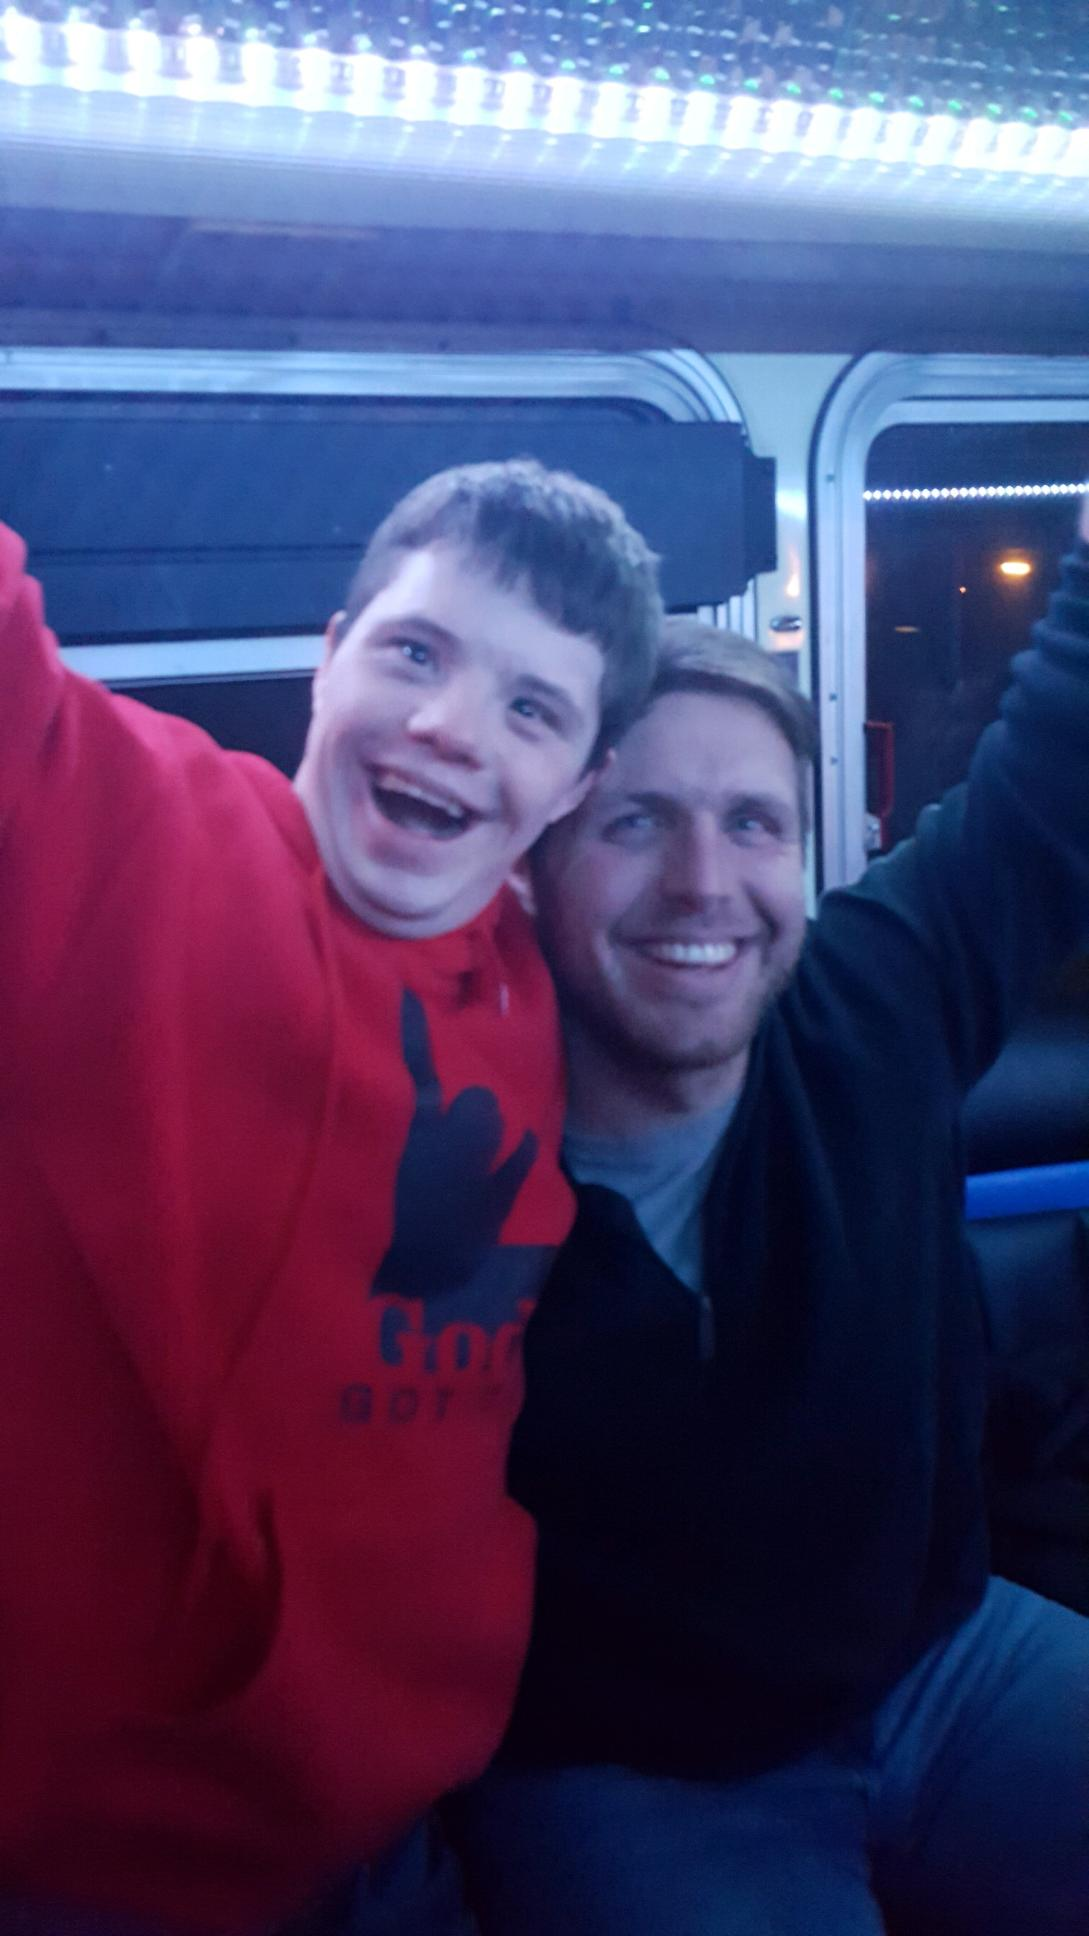 Two men with hug smiles inside a bus.